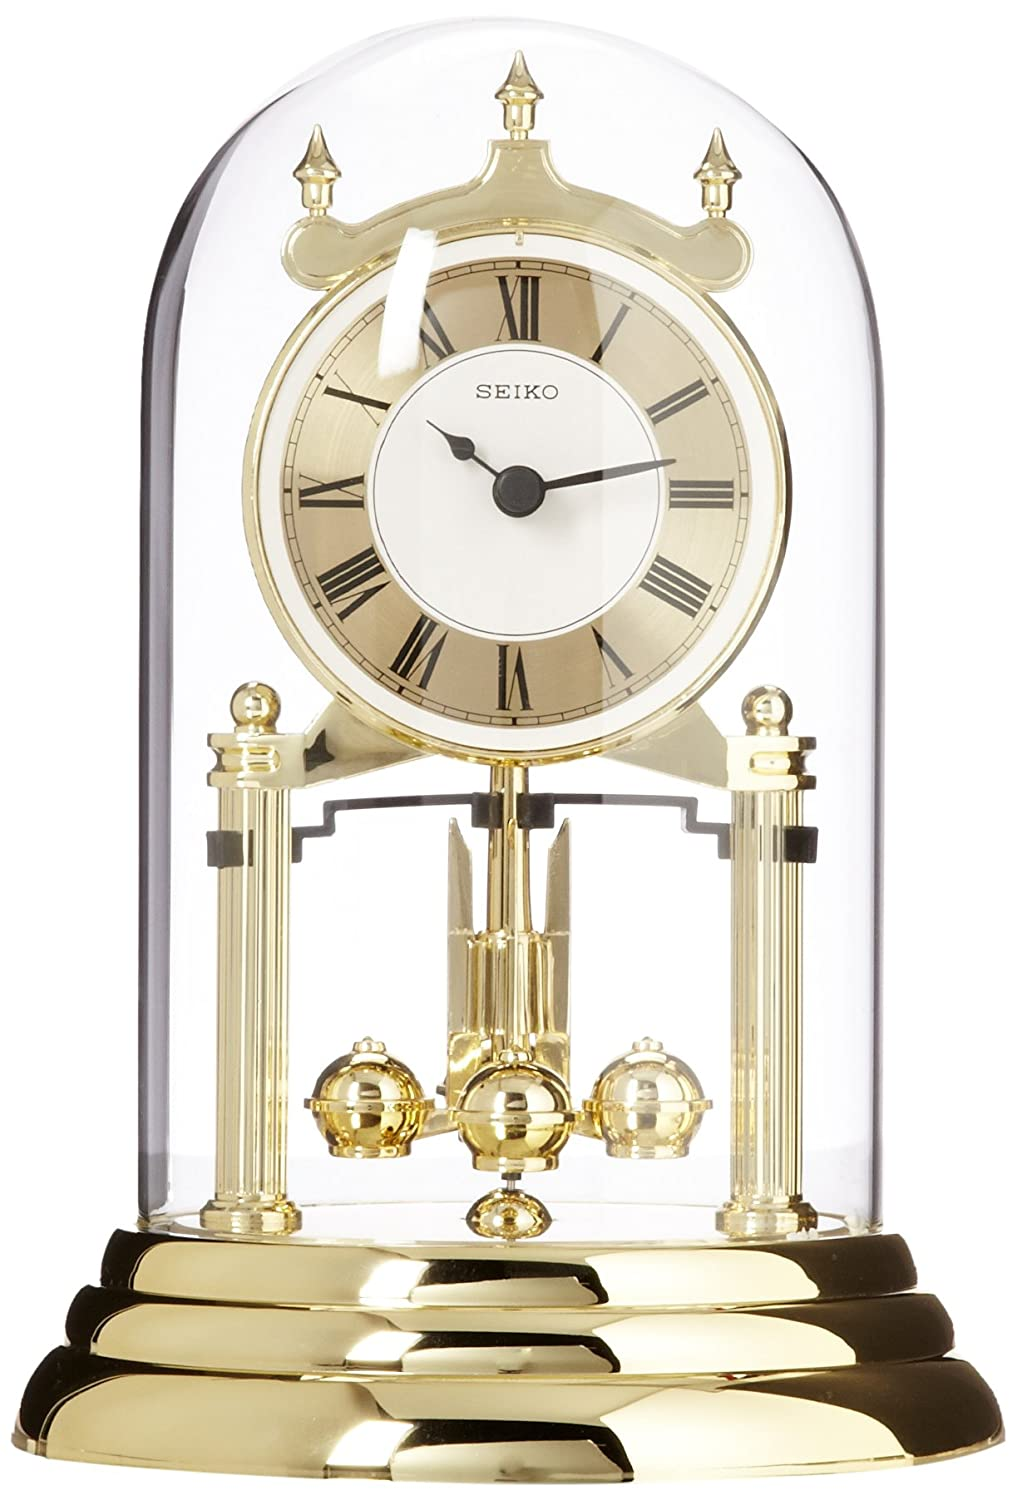 decorative mantel clock and table top clocks